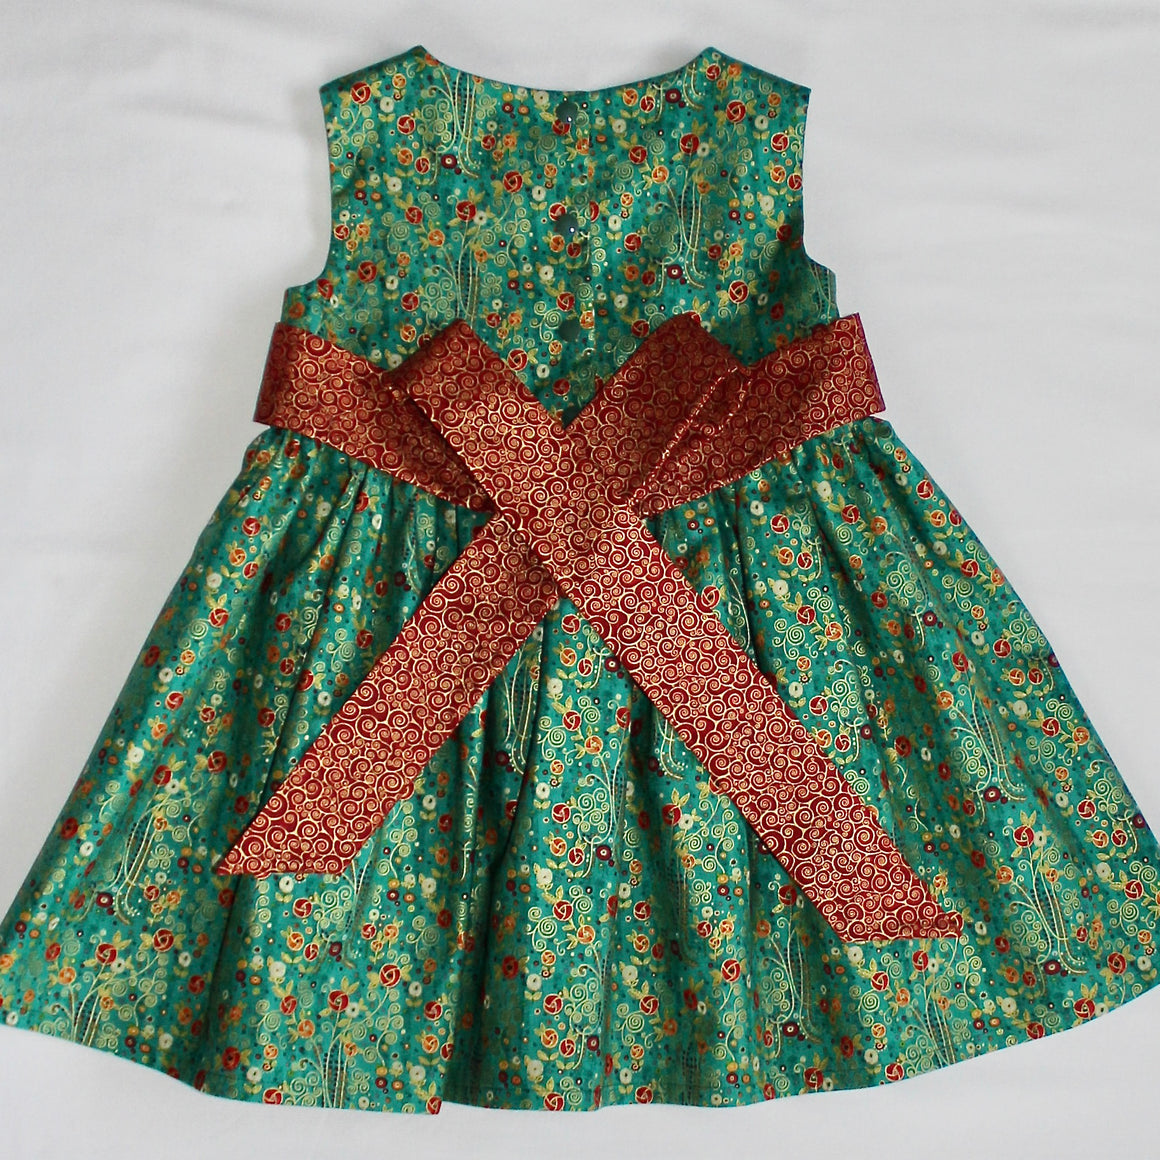 Ellie Dress - Green with Red & Orange Flowers